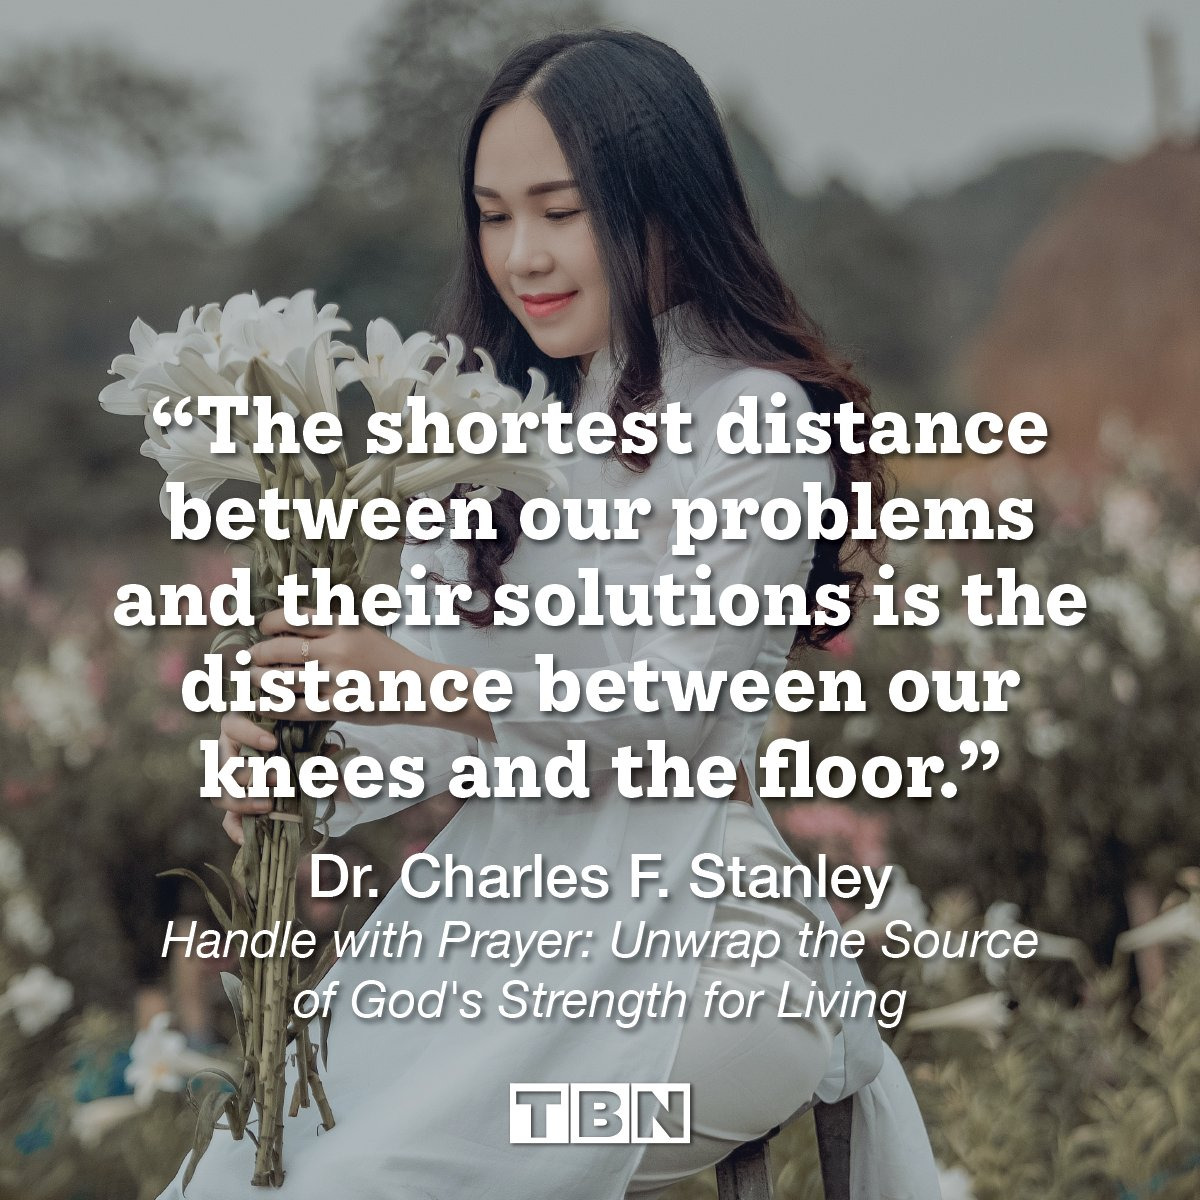 """""""The shortest distance between our problems and their solutions is the distance between our knees and the floor."""" - Dr. Charles F. Stanley  #QOTD #quoteoftheday https://t.co/CpMrIYV4Sg"""